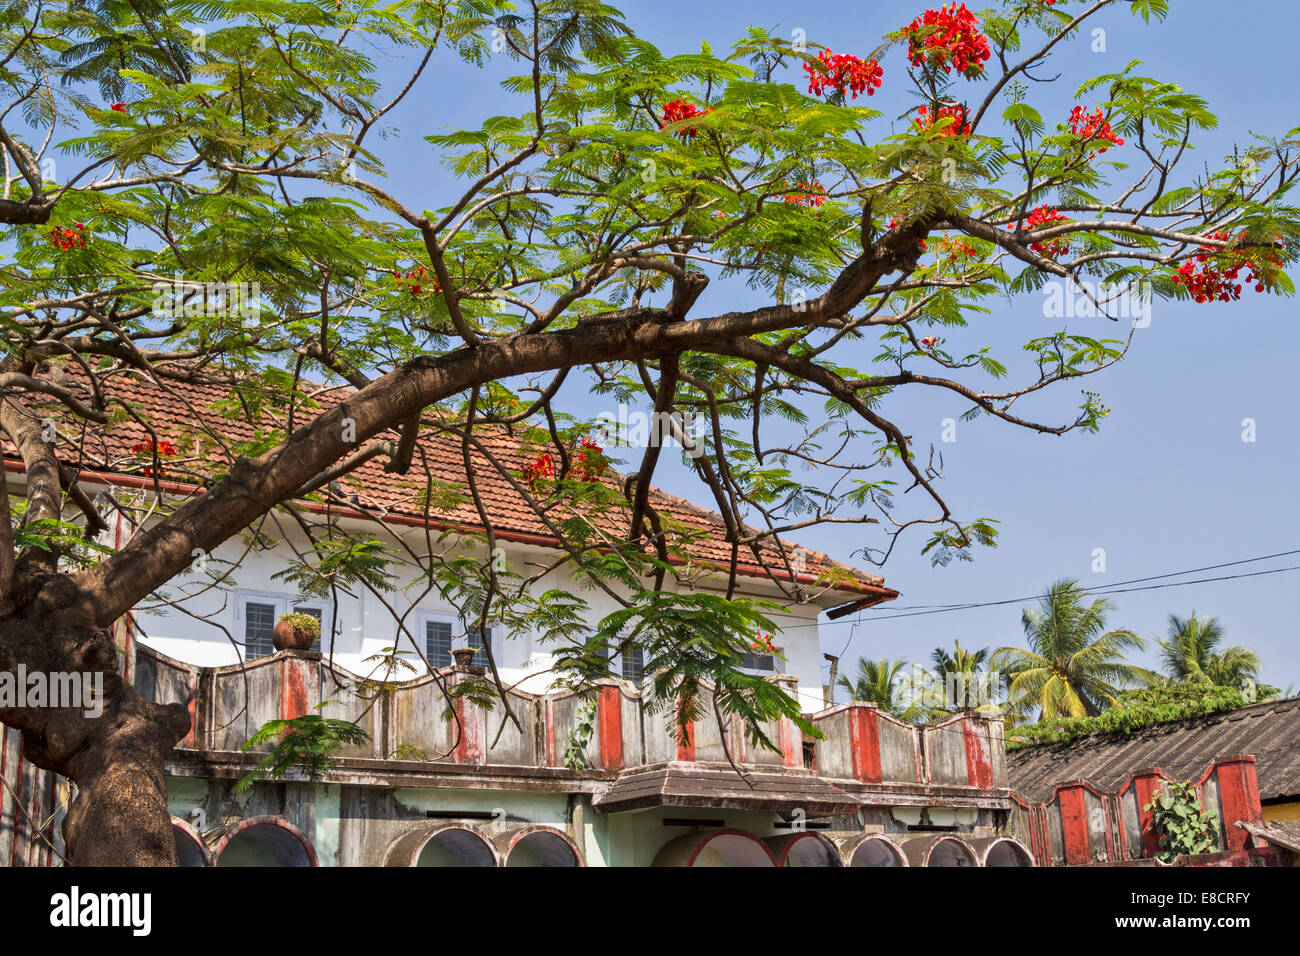 COCHIN OR KOCHI  INDIA FLAMBOYANT TREE [ DELONIX REGIA ] AND RED FLOWERS COVER A RENOVATED HOUSE IN THE OLD PORT - Stock Image